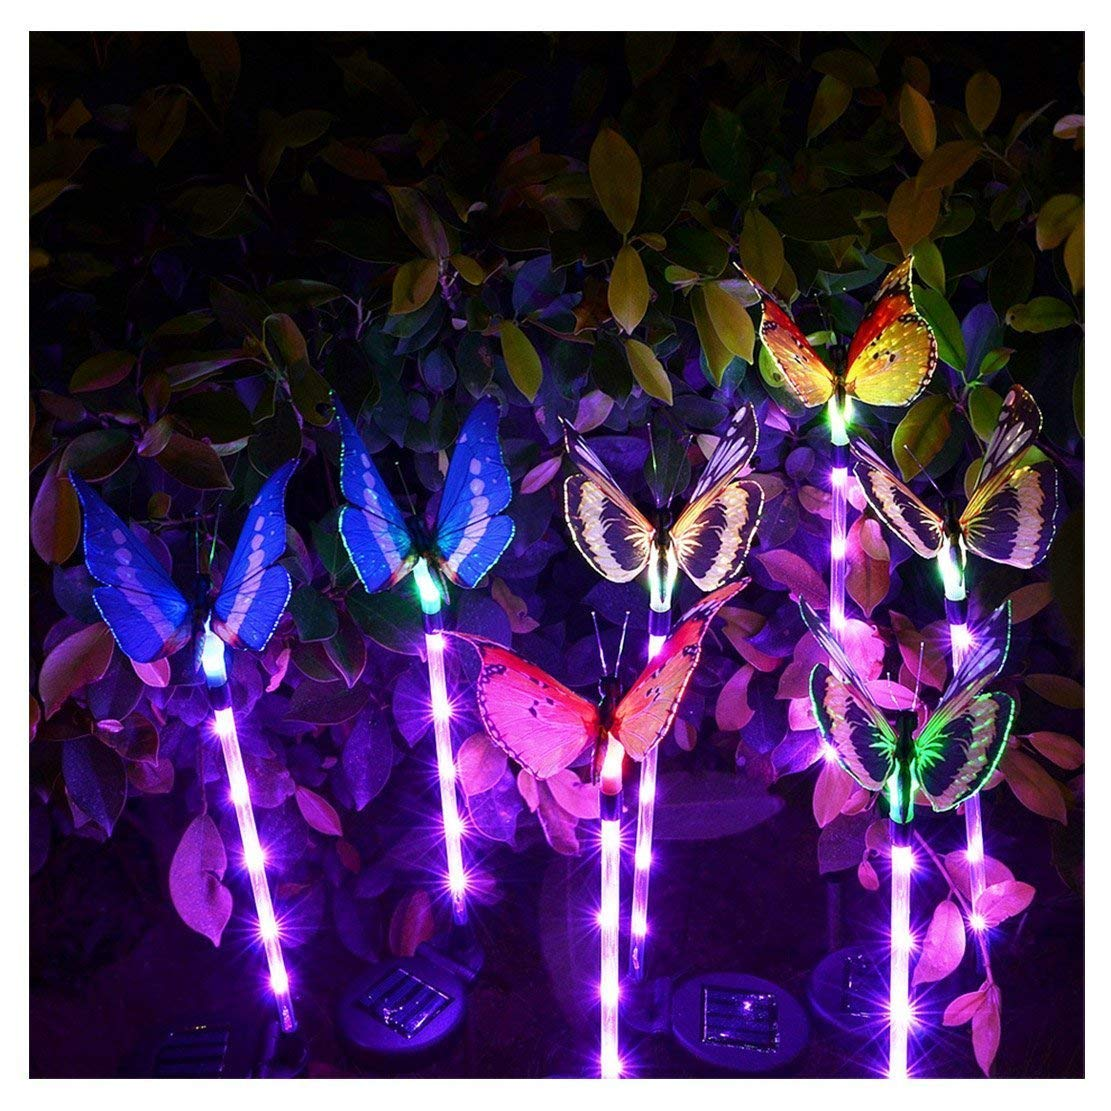 Dolucky Outdoor Butterfly Solar Garden Light Fiber Optic Butterfly Solar Powered Light with Multi-Color Changing LED Light for Garden Patio Flowerbed, Waterproof, 3 Pack